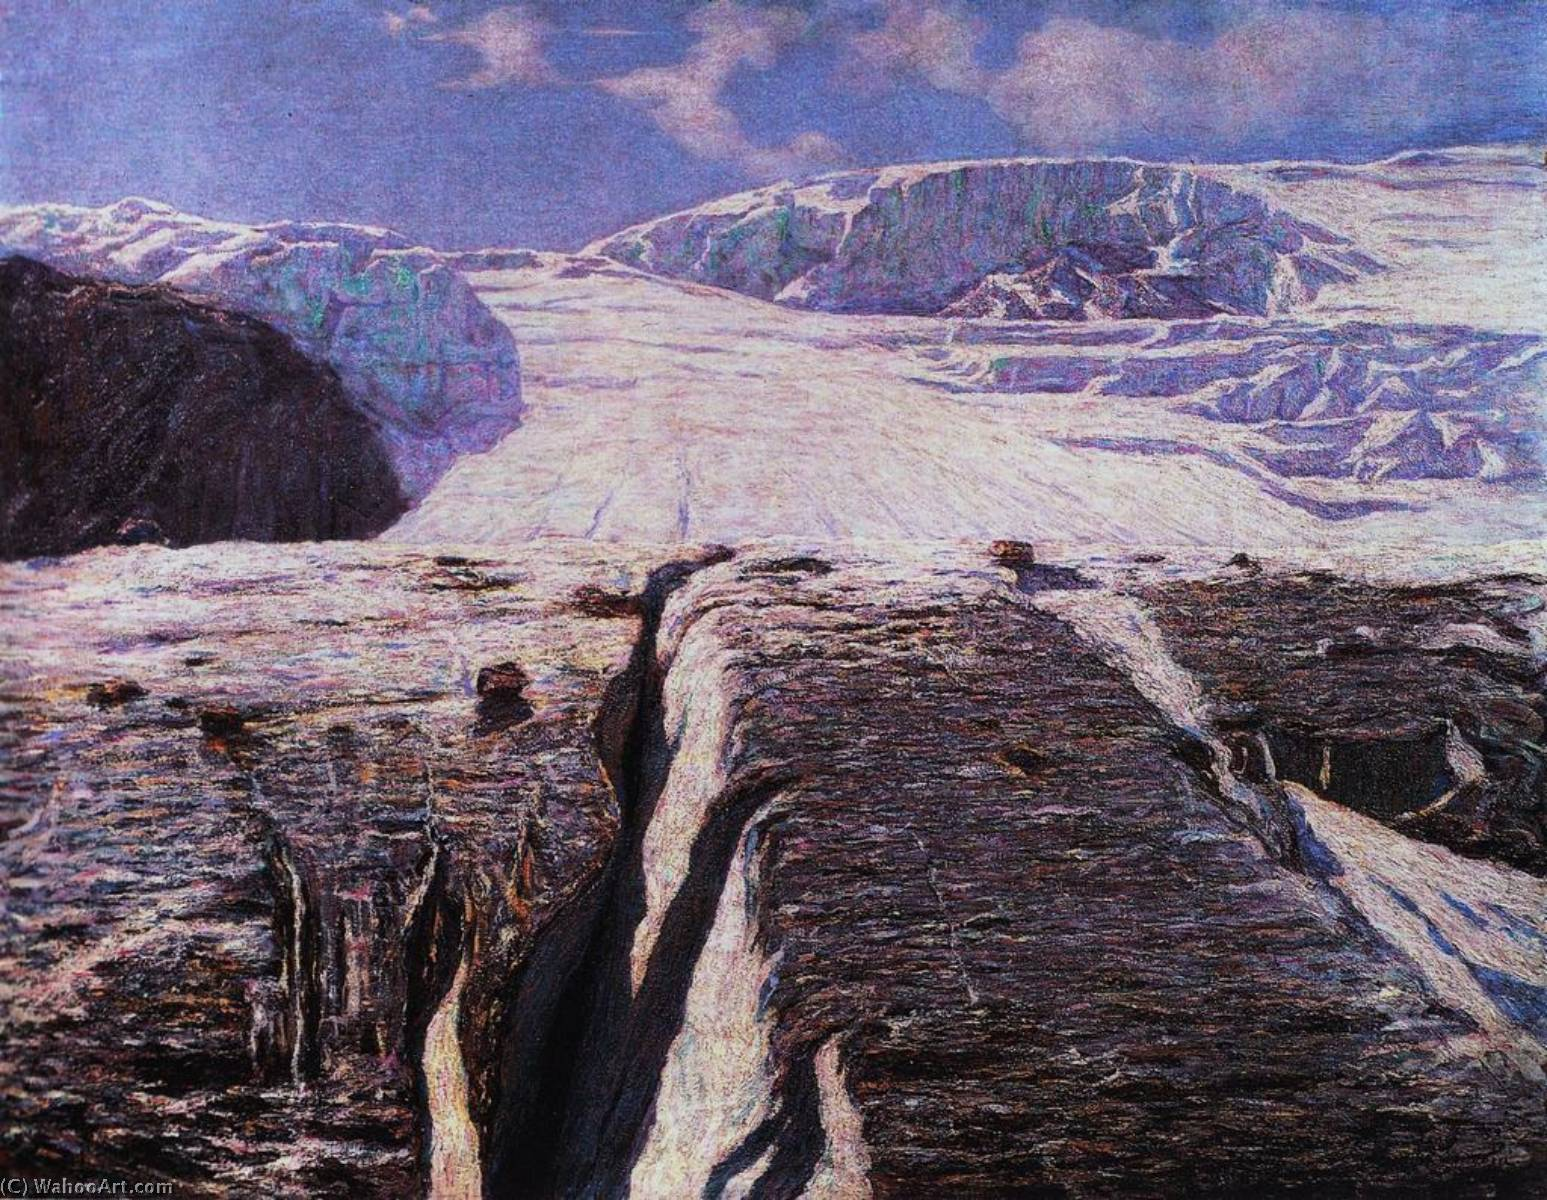 The Glacier, Oil On Canvas by Emilio Longoni (1859-1932)